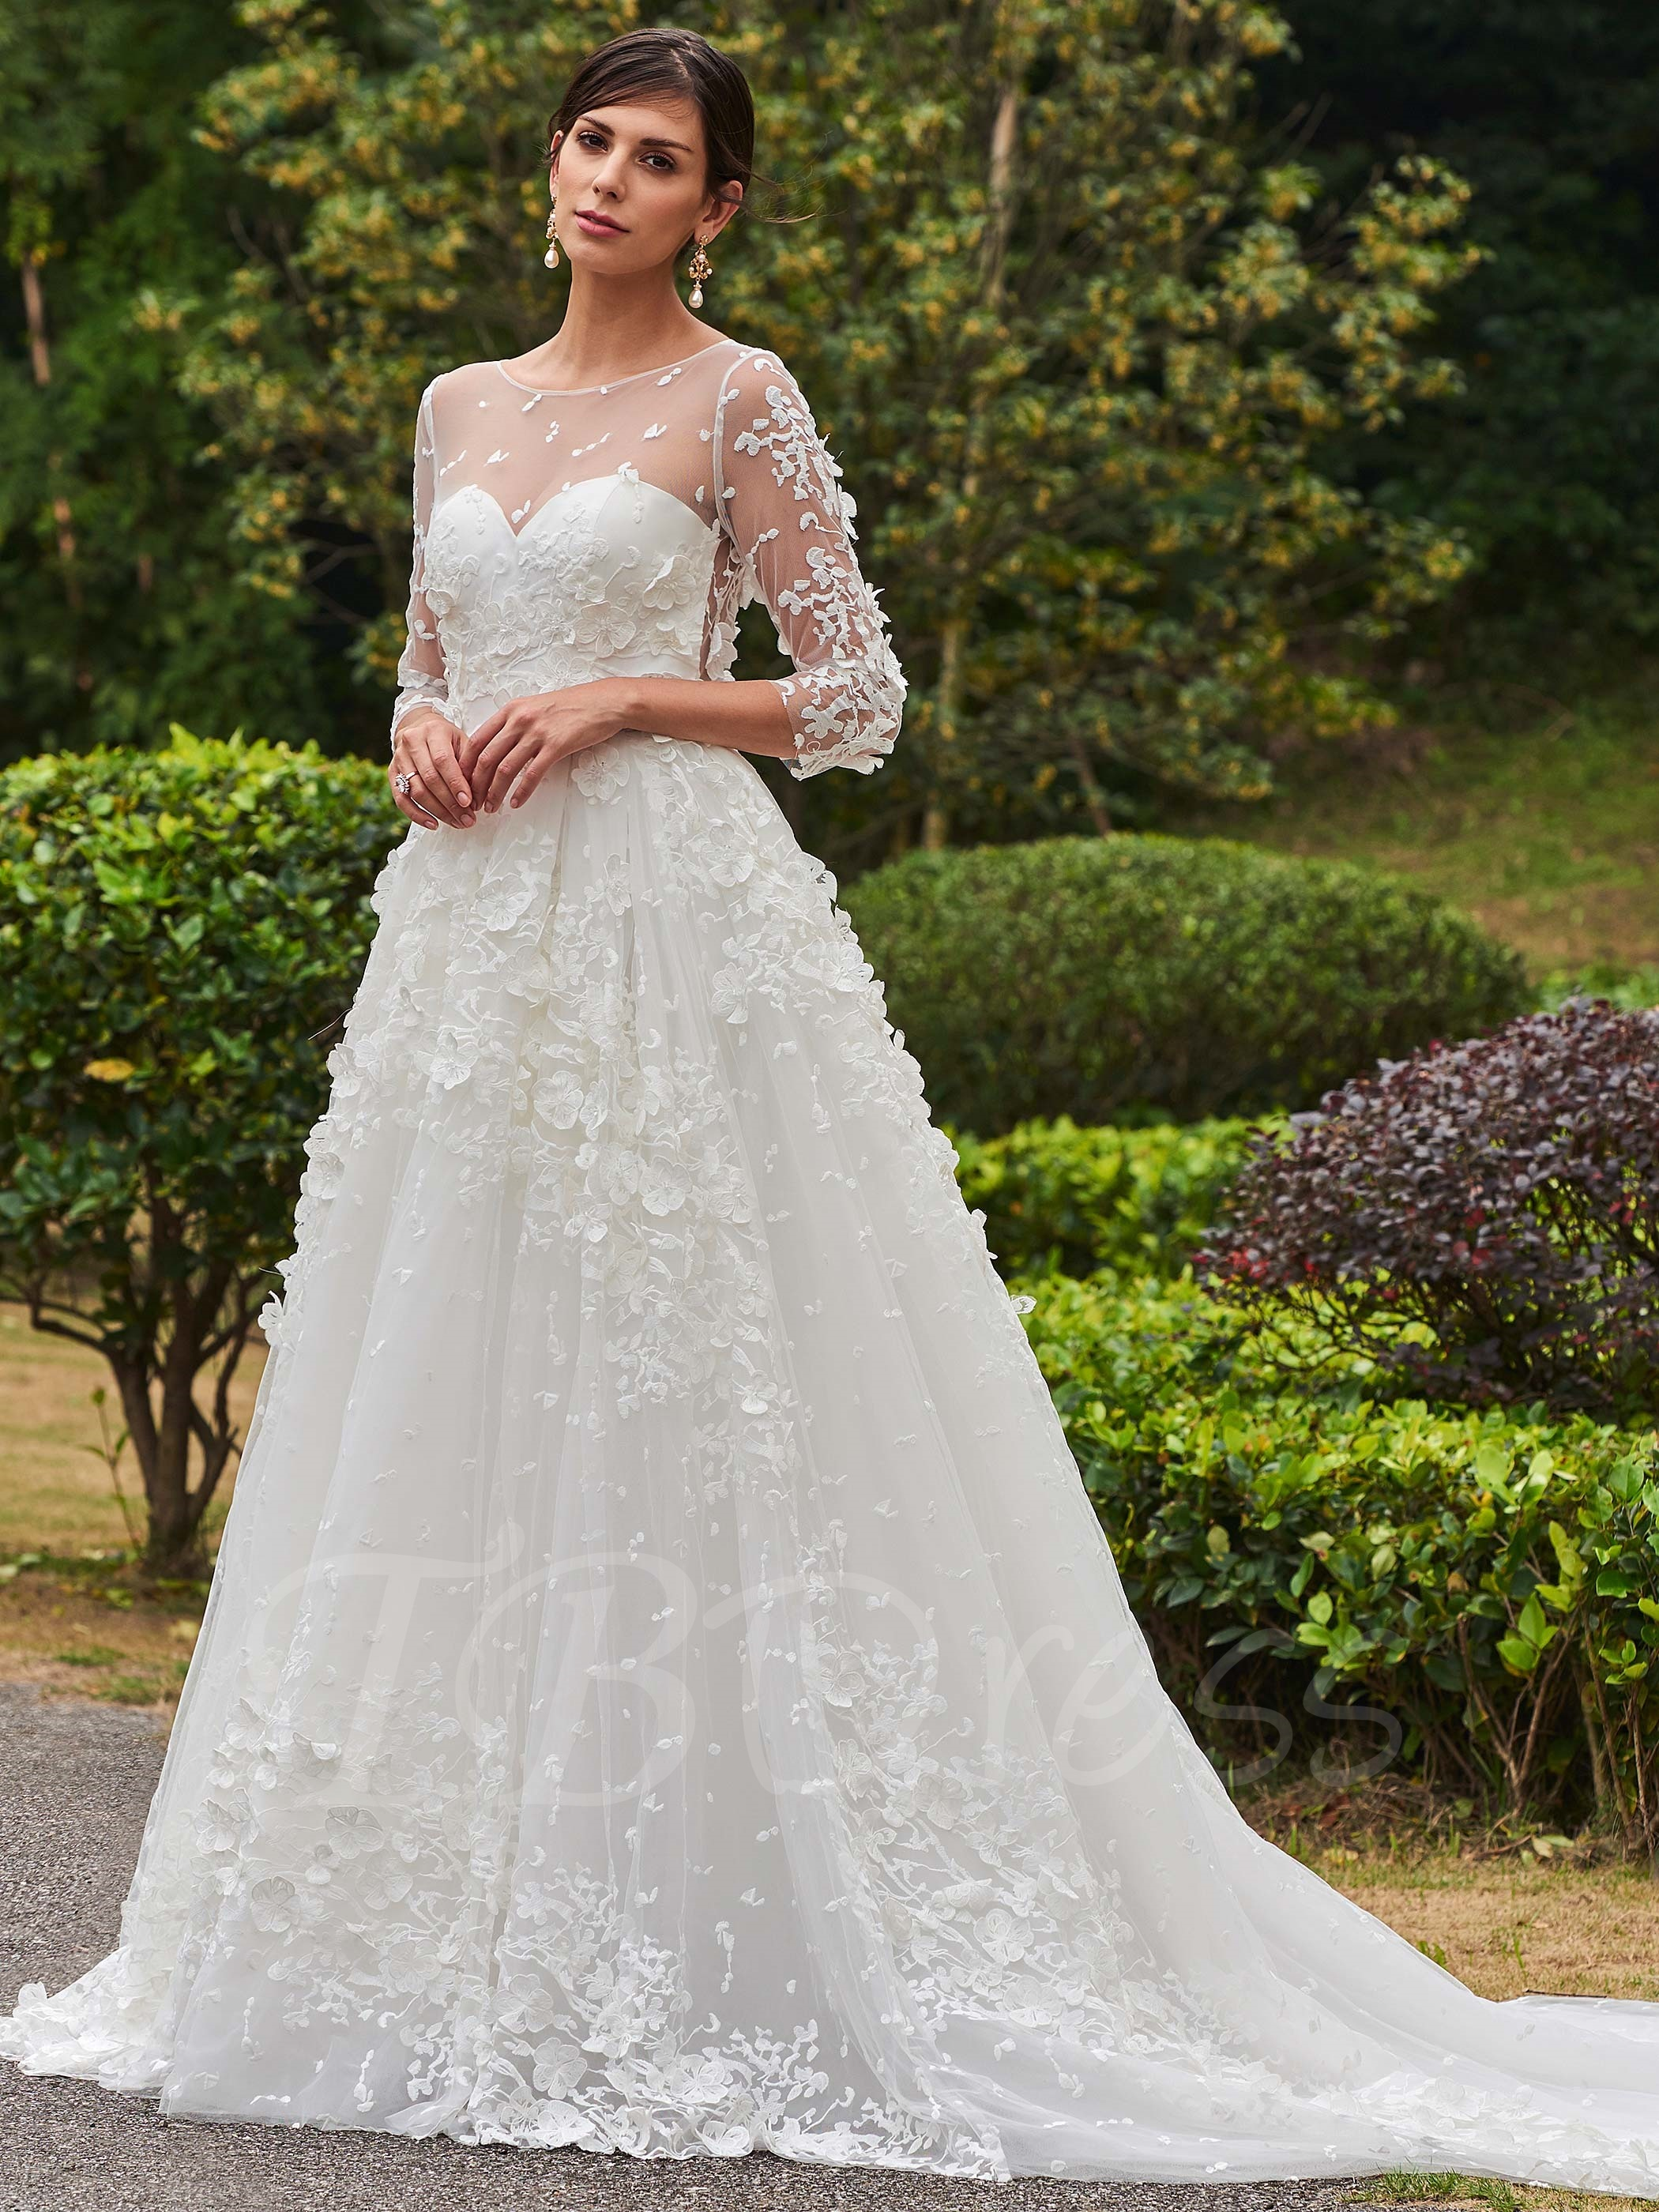 A-line wedding dress with long sleeves